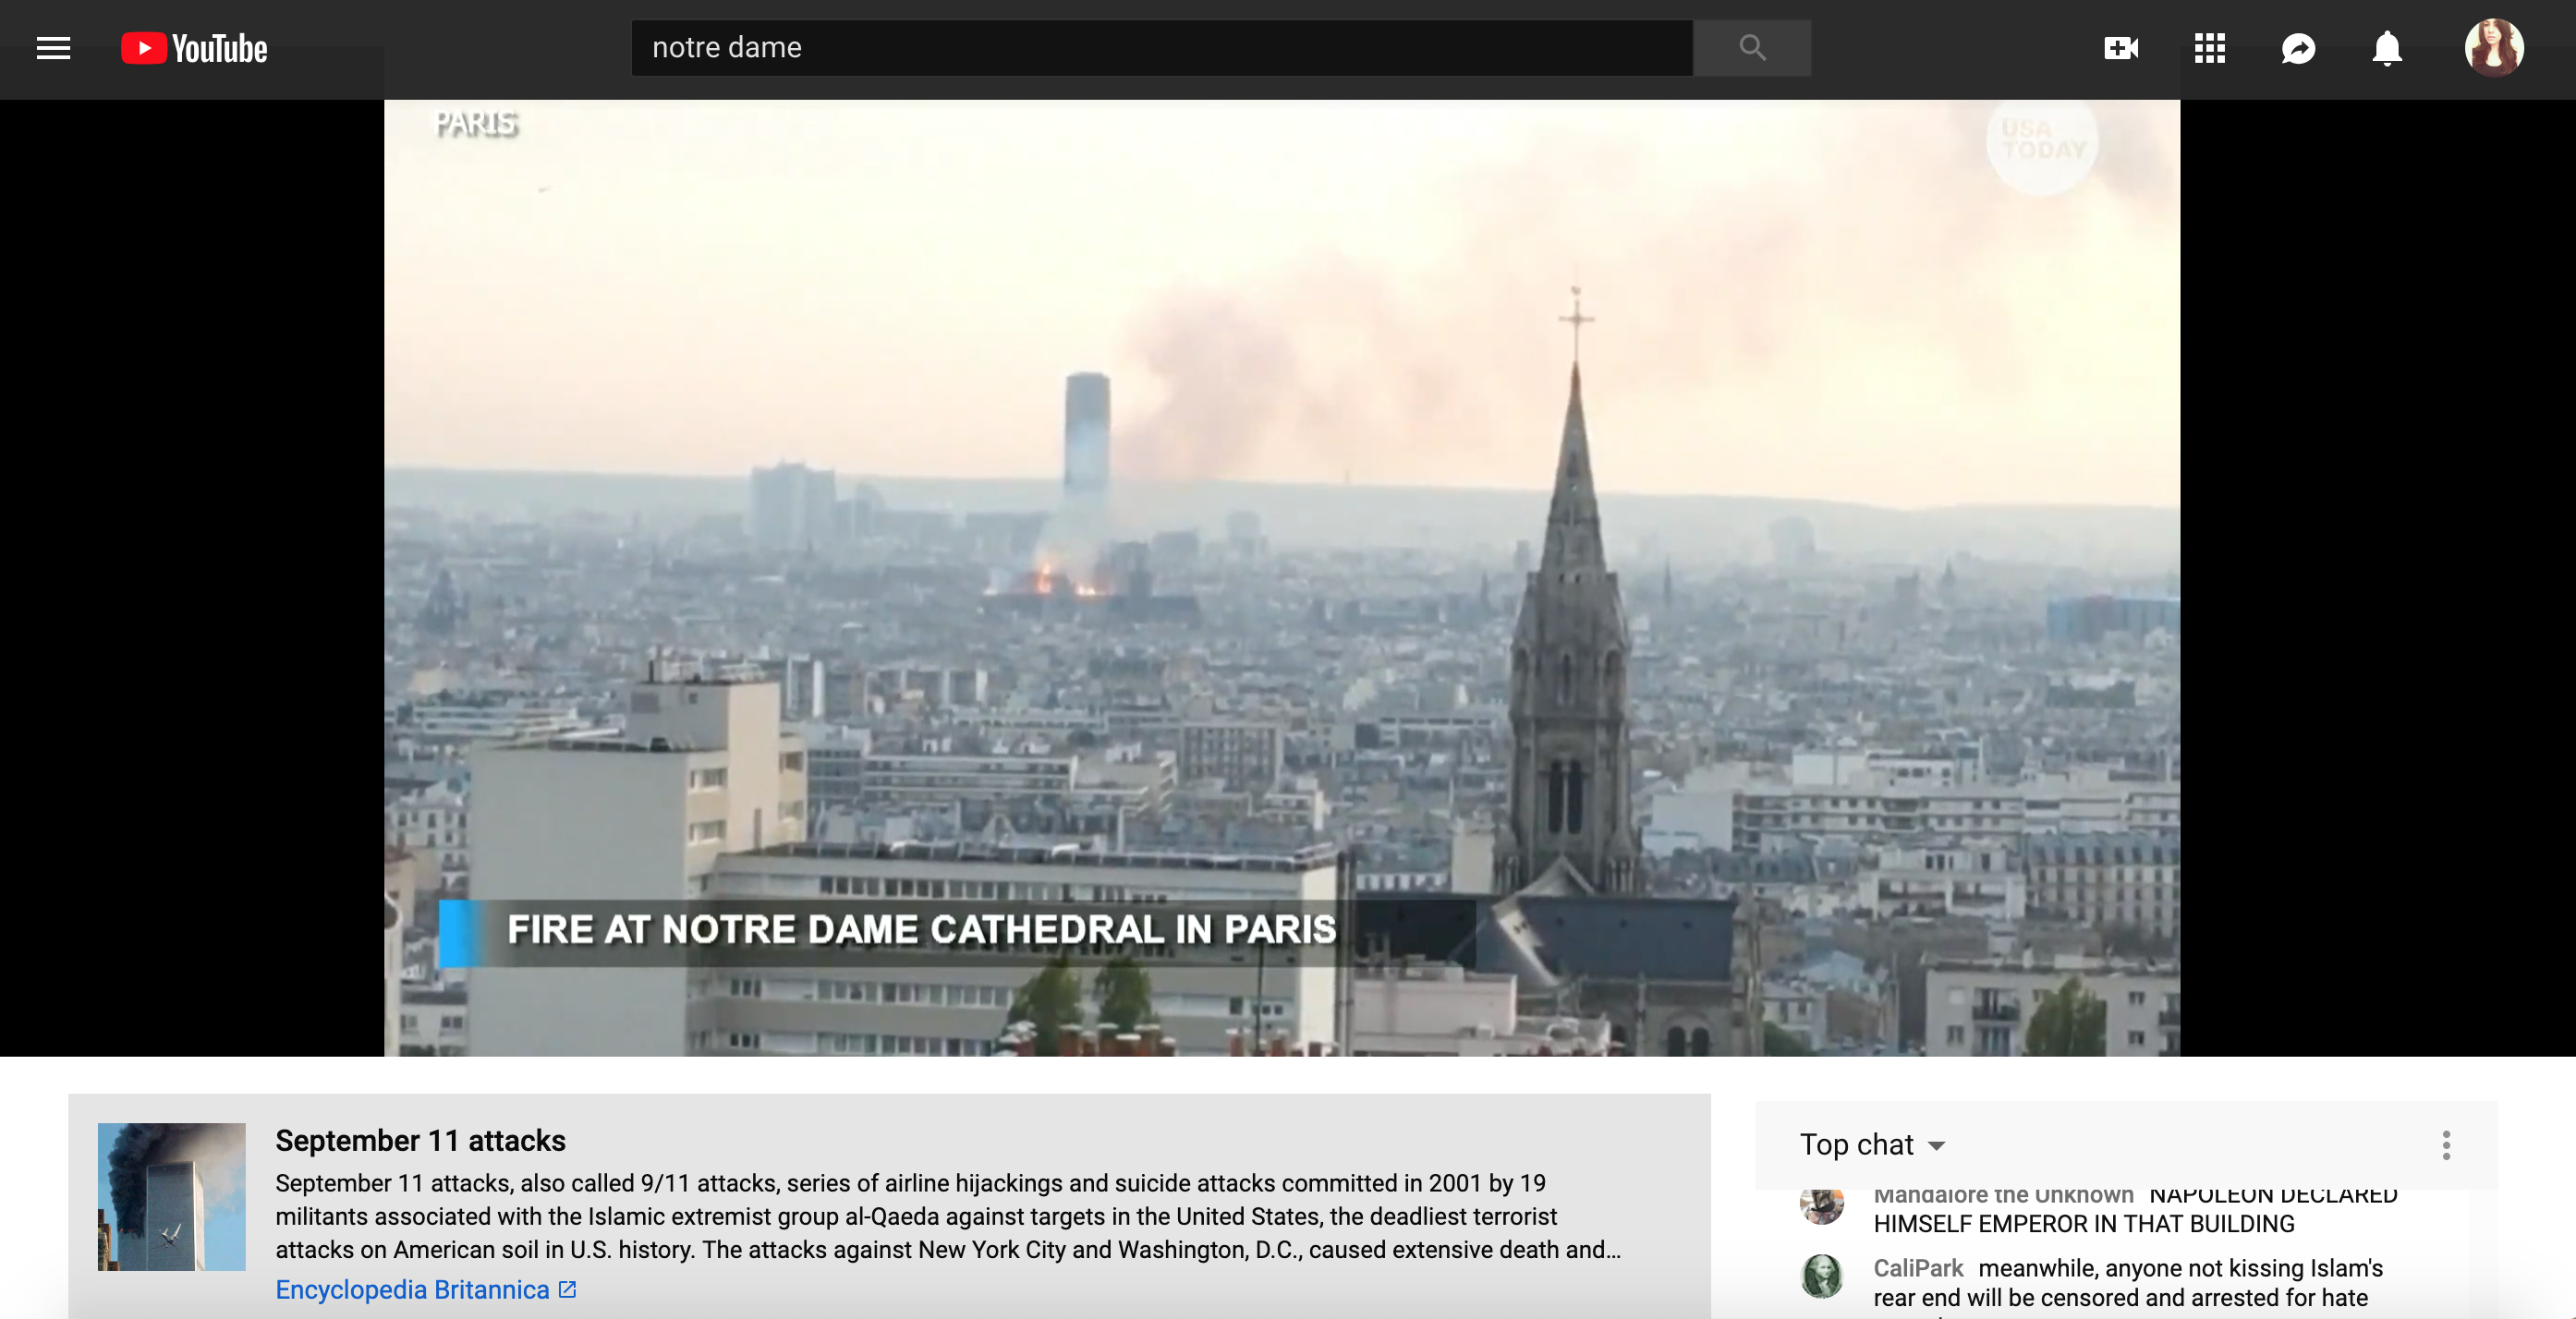 A view of the Sept. 11 description panel beneath footage of the Notre Dame fire on YouTube.